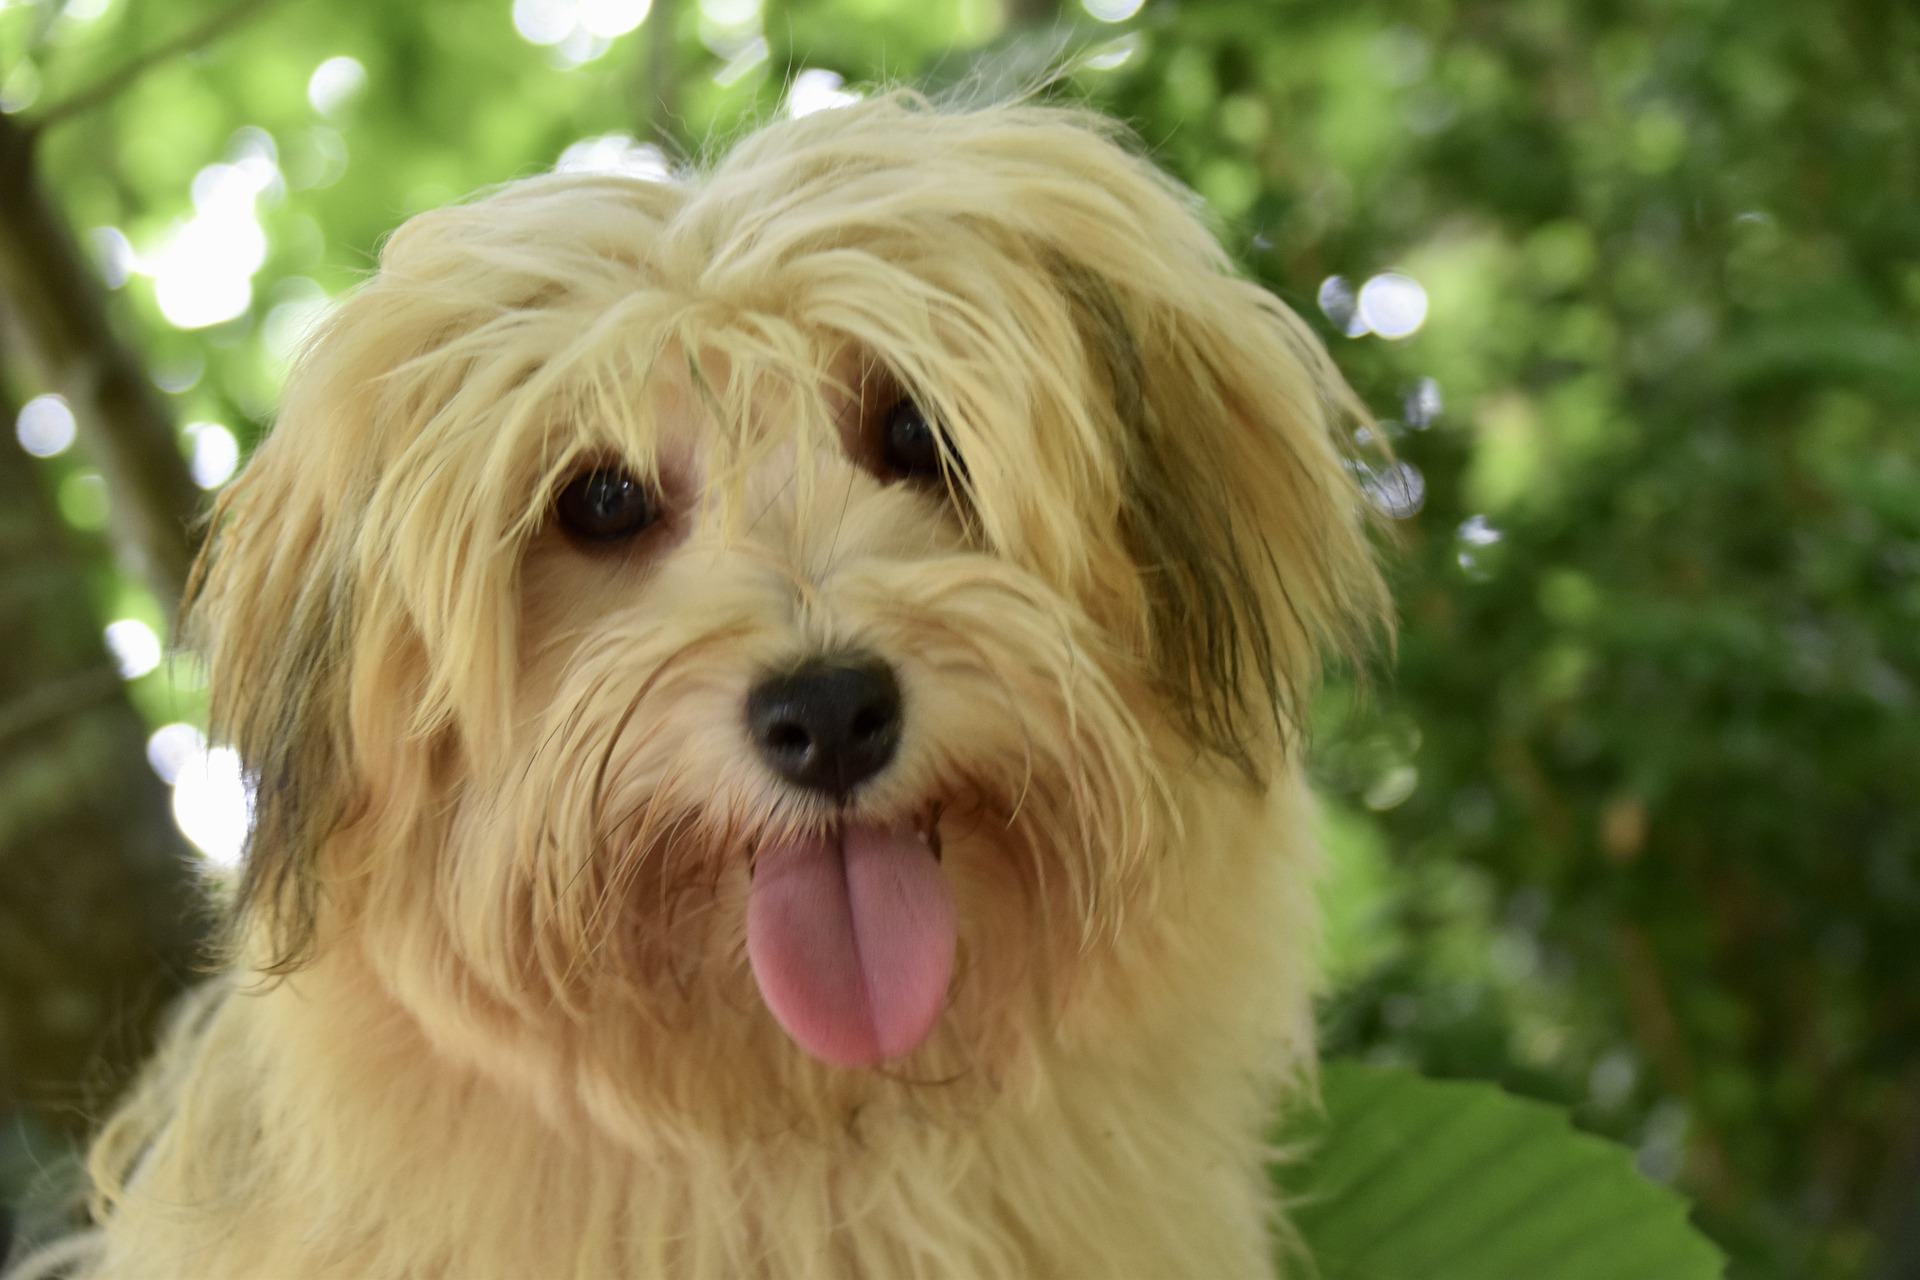 A fluffy Havanese dog smiling with its tongue out.